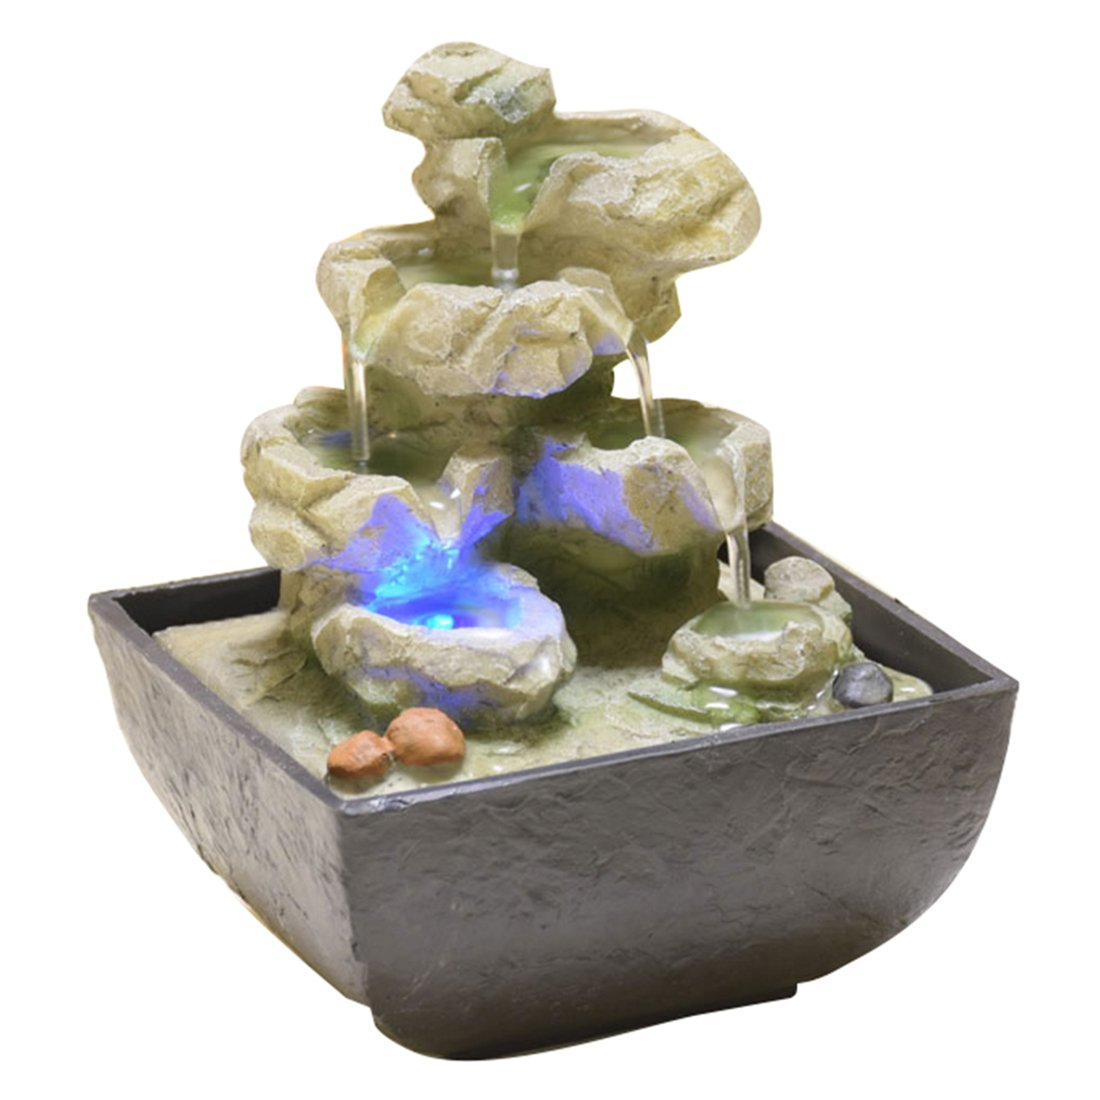 NewEGG Indoor Tabletop Fountain Water Lily Tabletop Decor Colored LED Light (D 135x135x180mm) by NewEGG